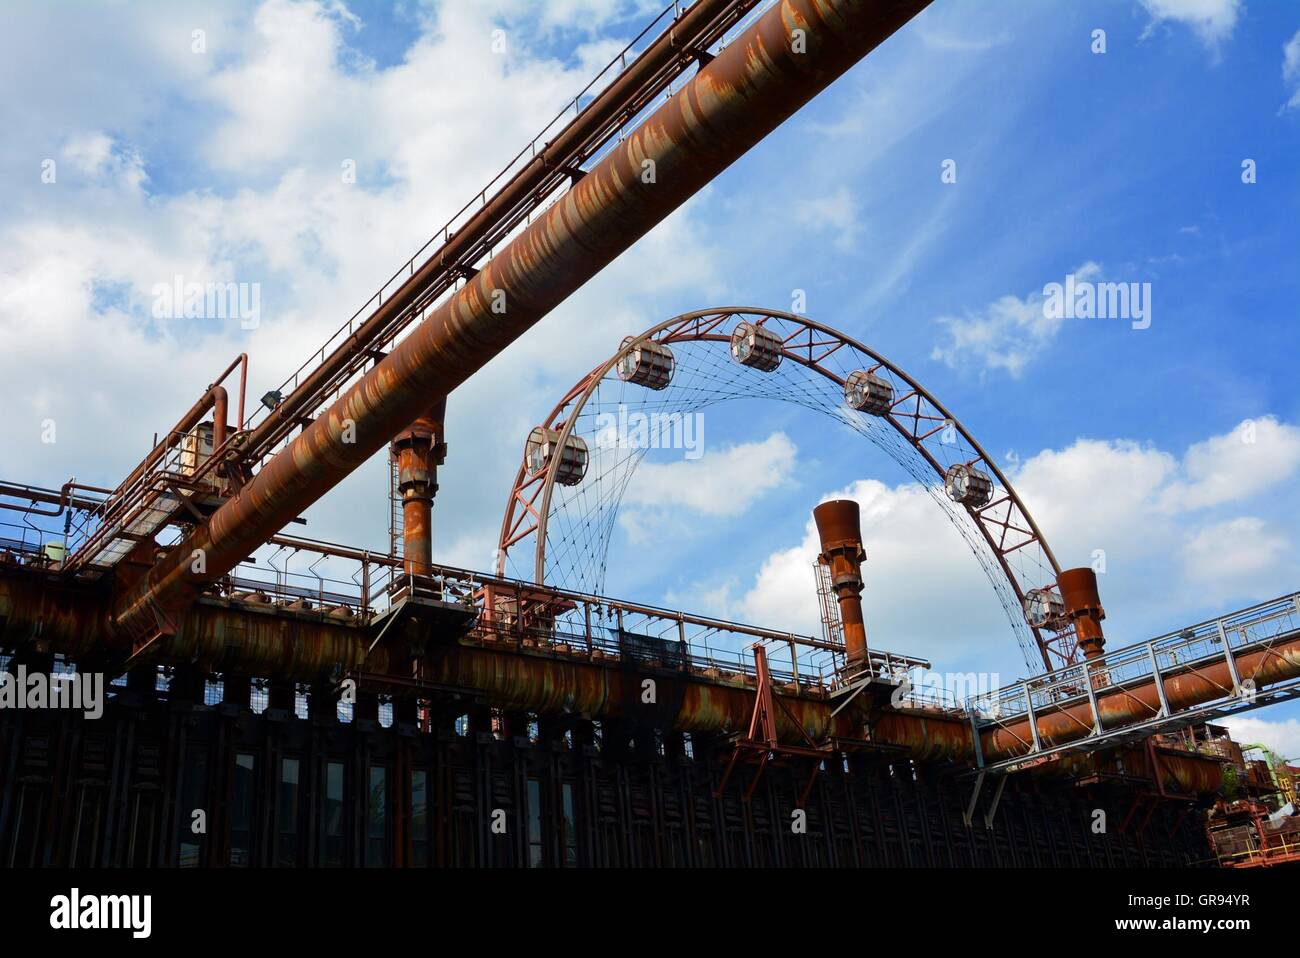 Low Angle View Of Rusty Industry Against Cloudy Sky At Zollverein Coal Mine Industrial Complex - Stock Image